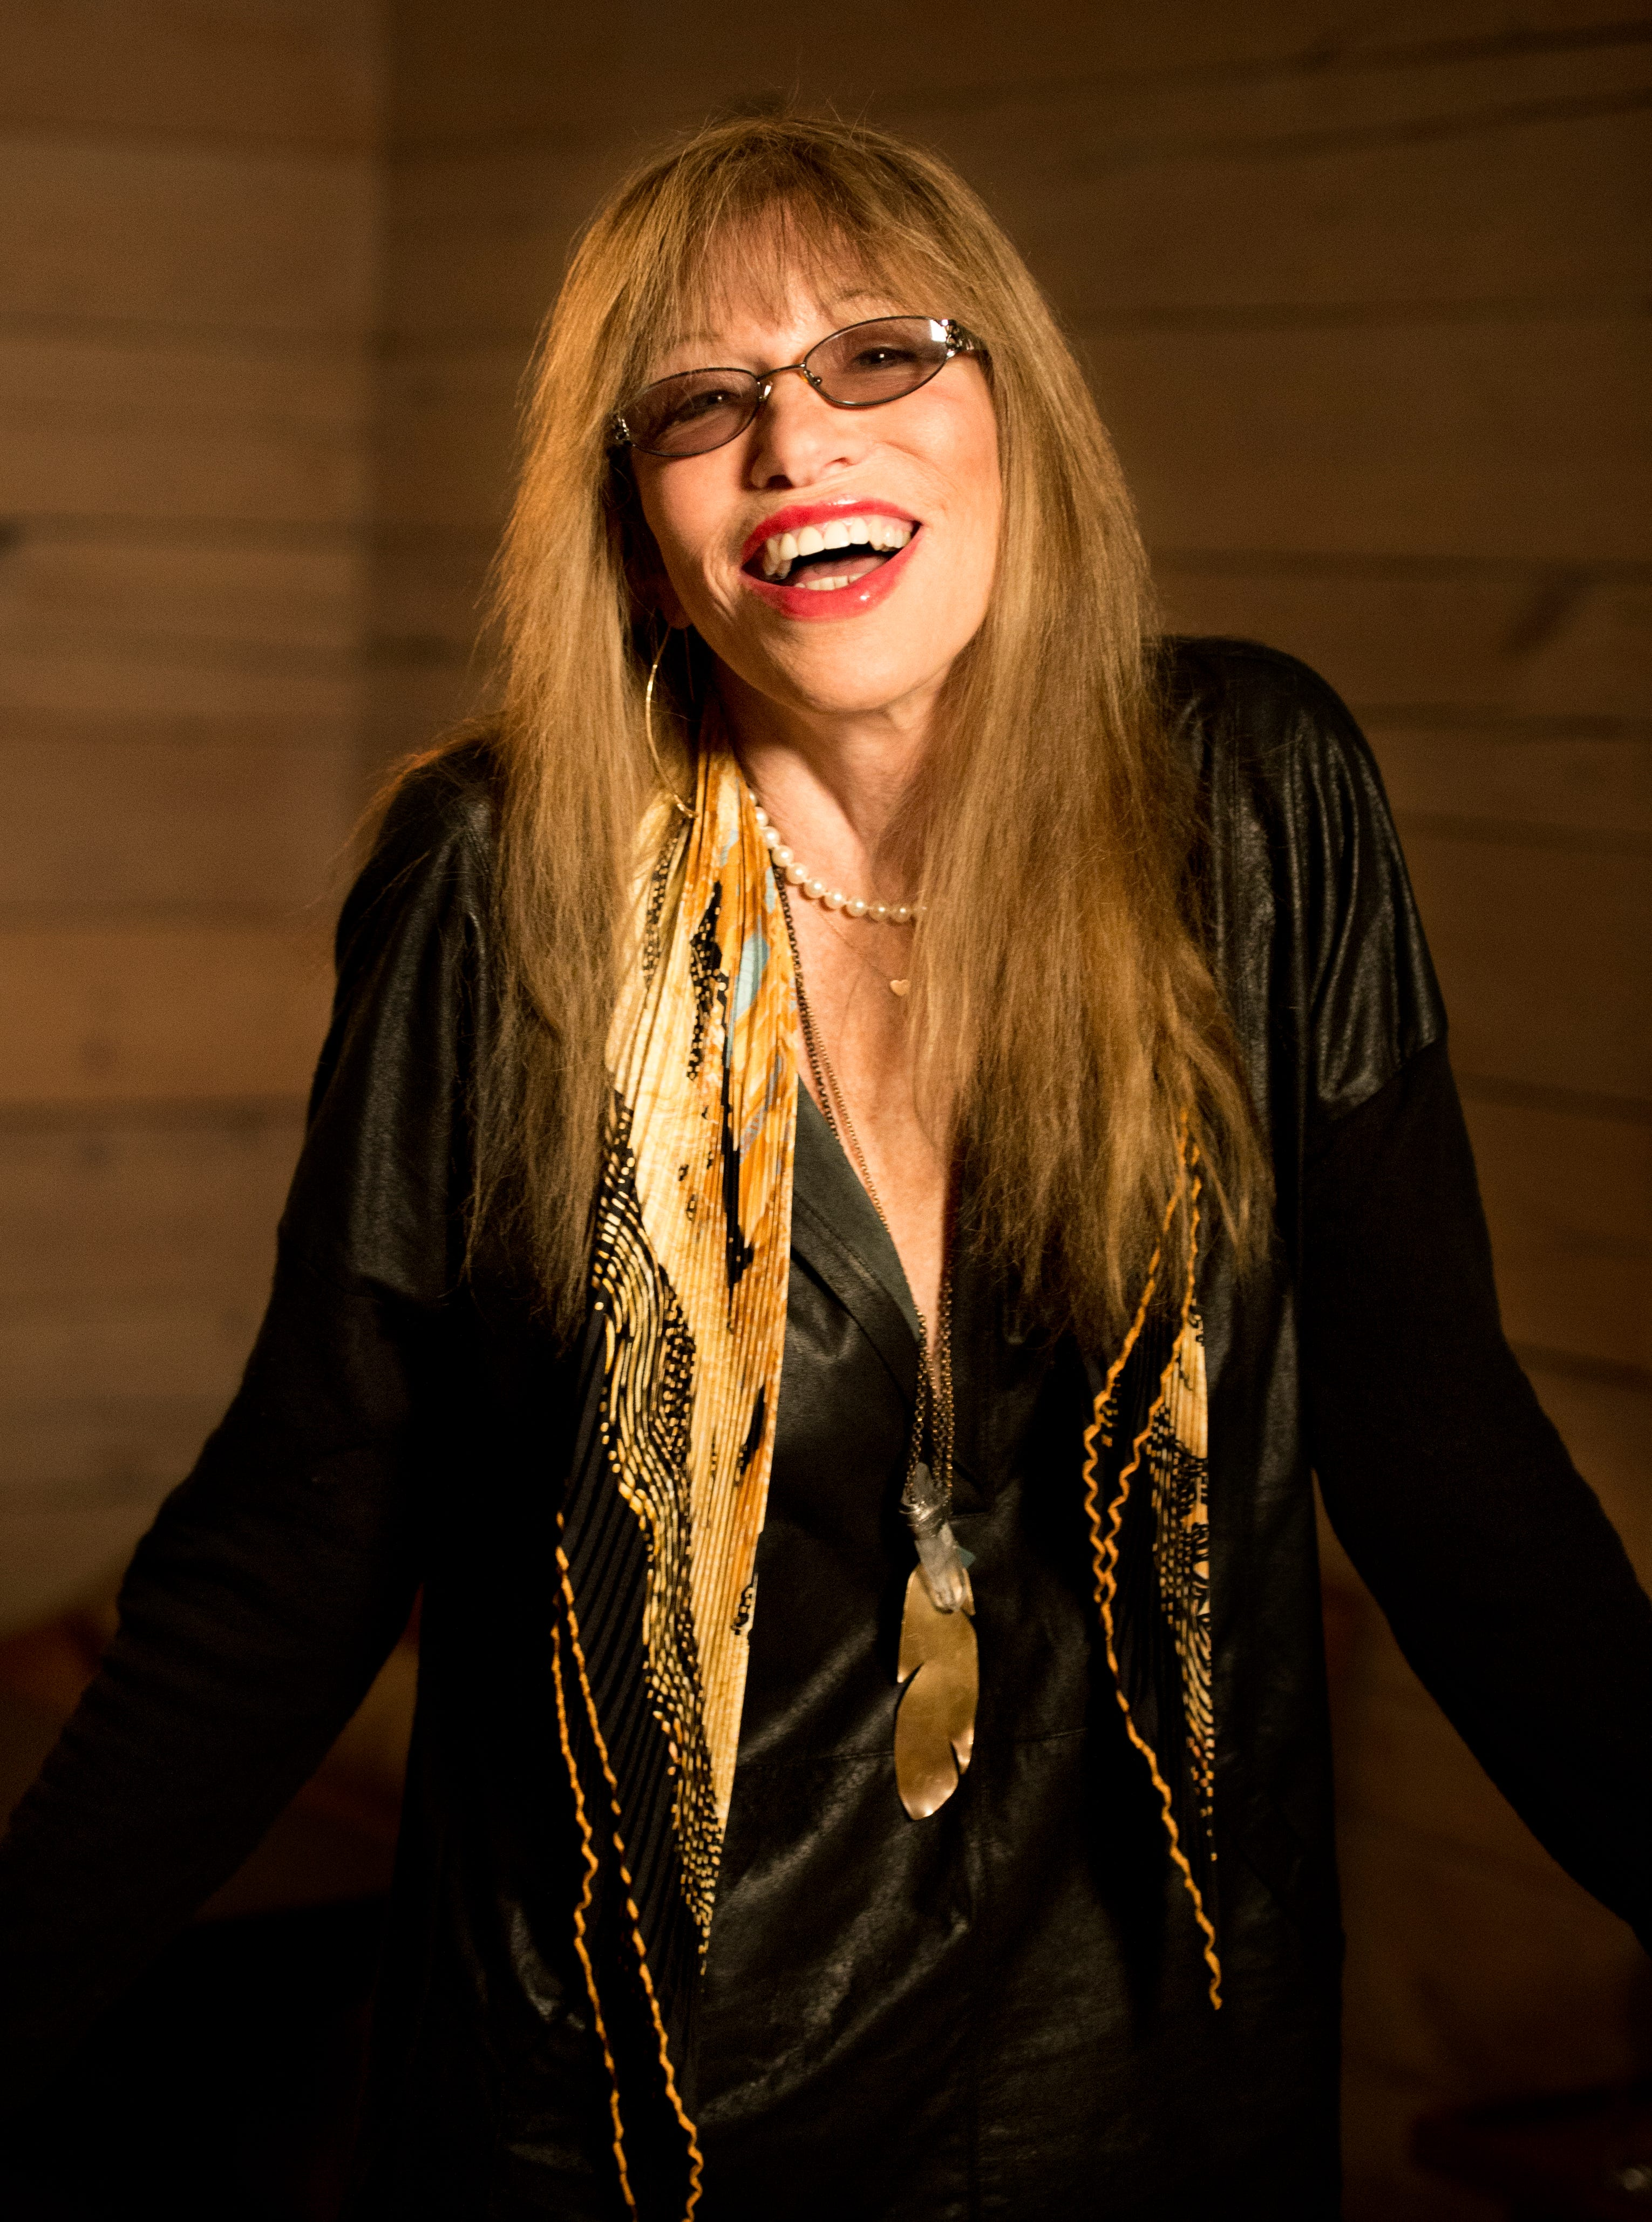 Is carly simon dating anyone